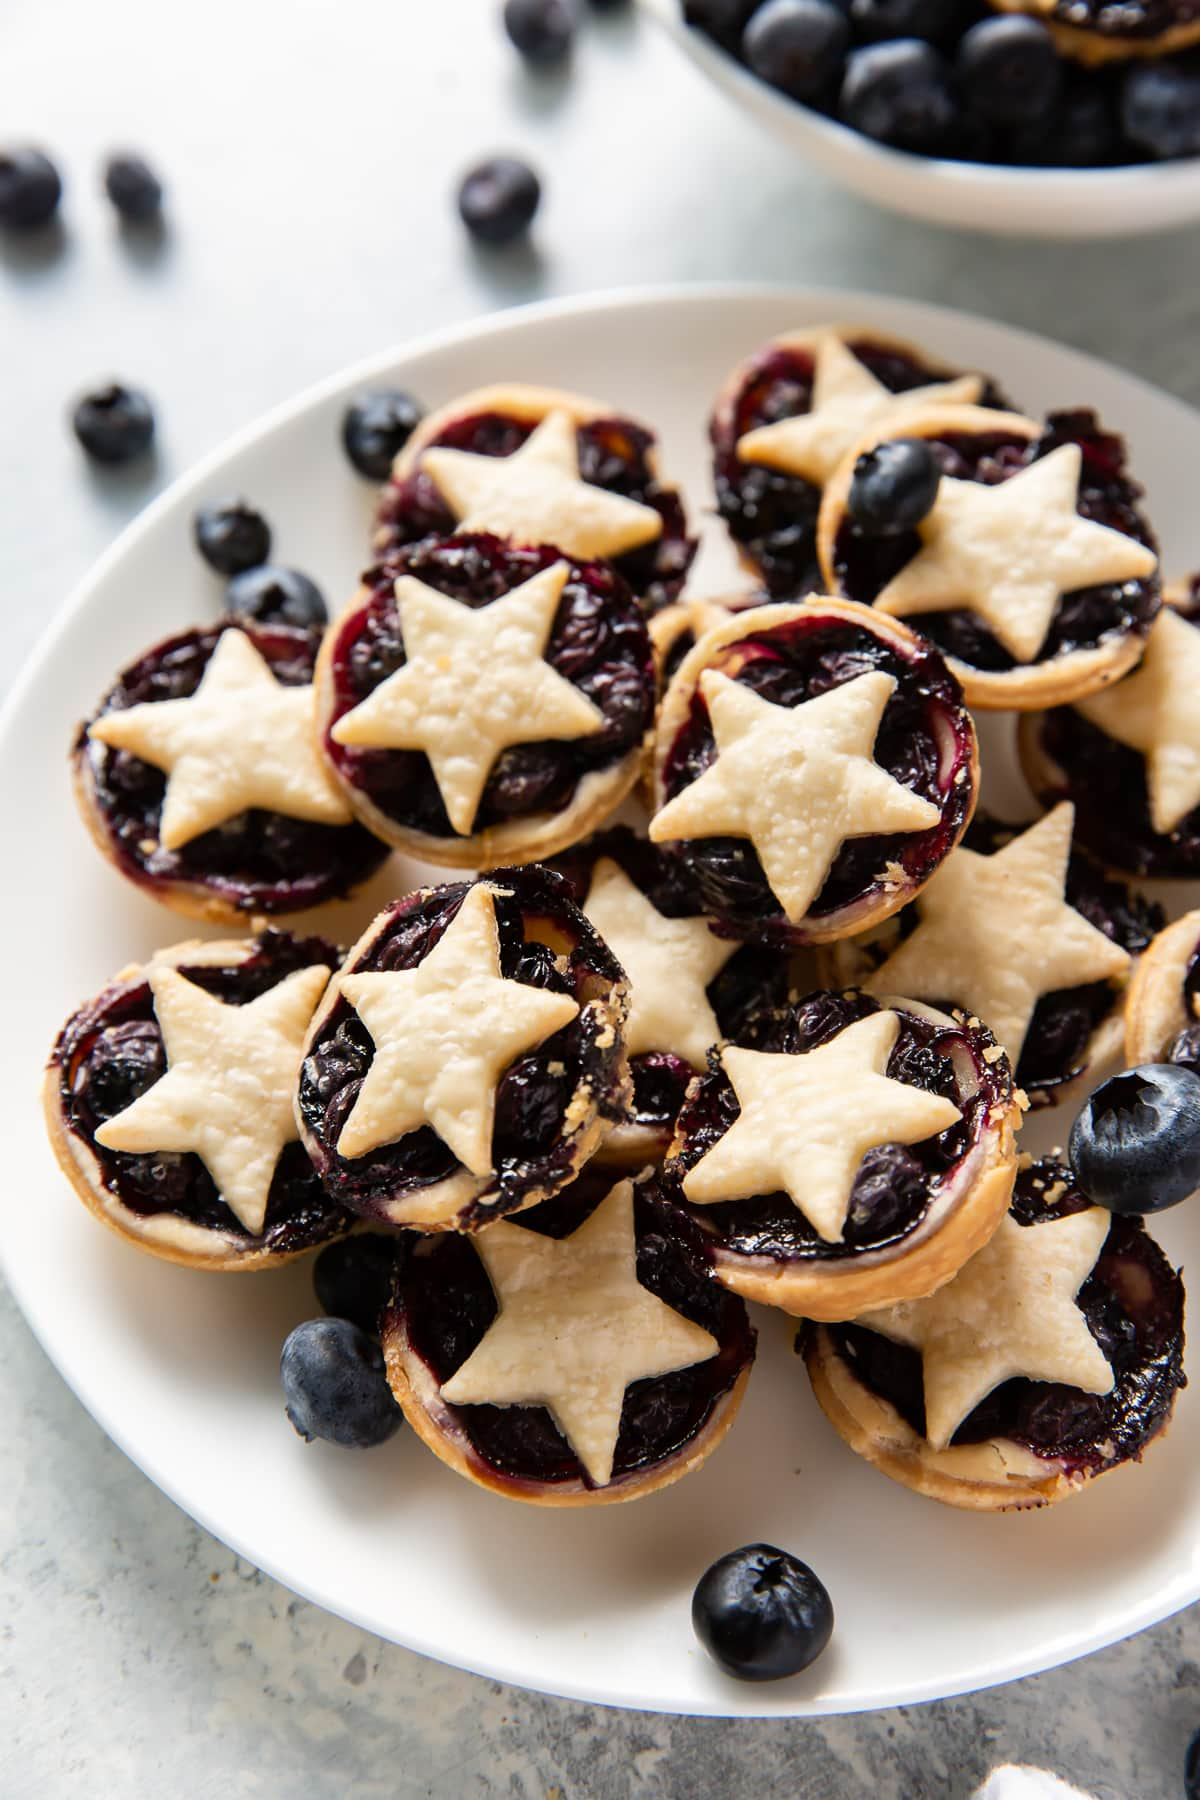 plate with mini blueberry pies with star-shaped top crust